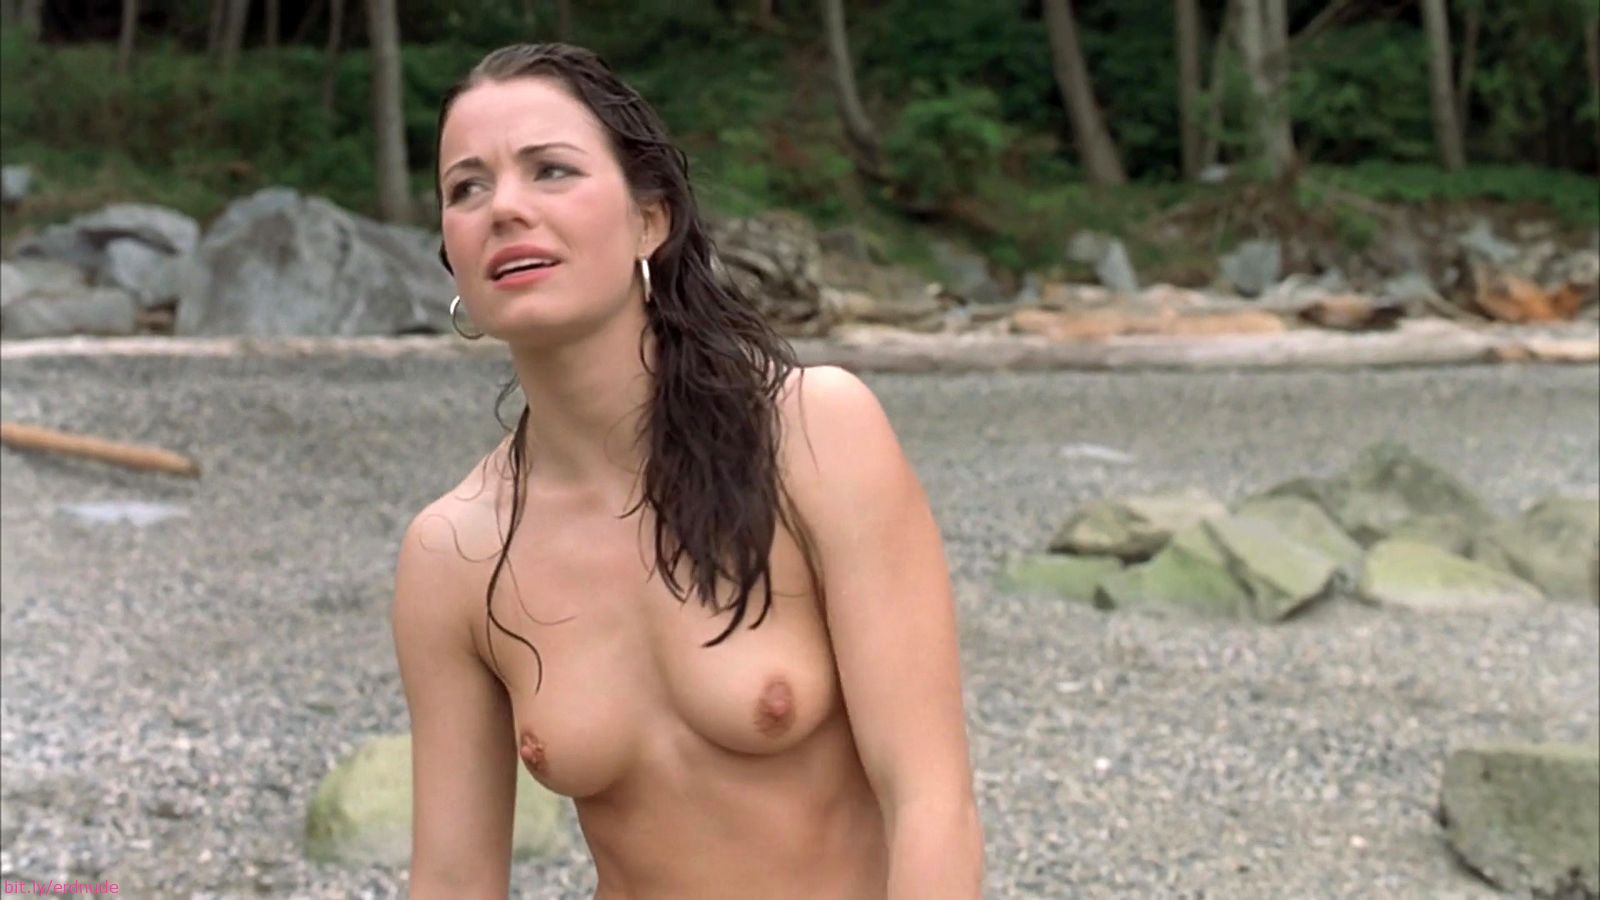 Erica durance topless frankly, you